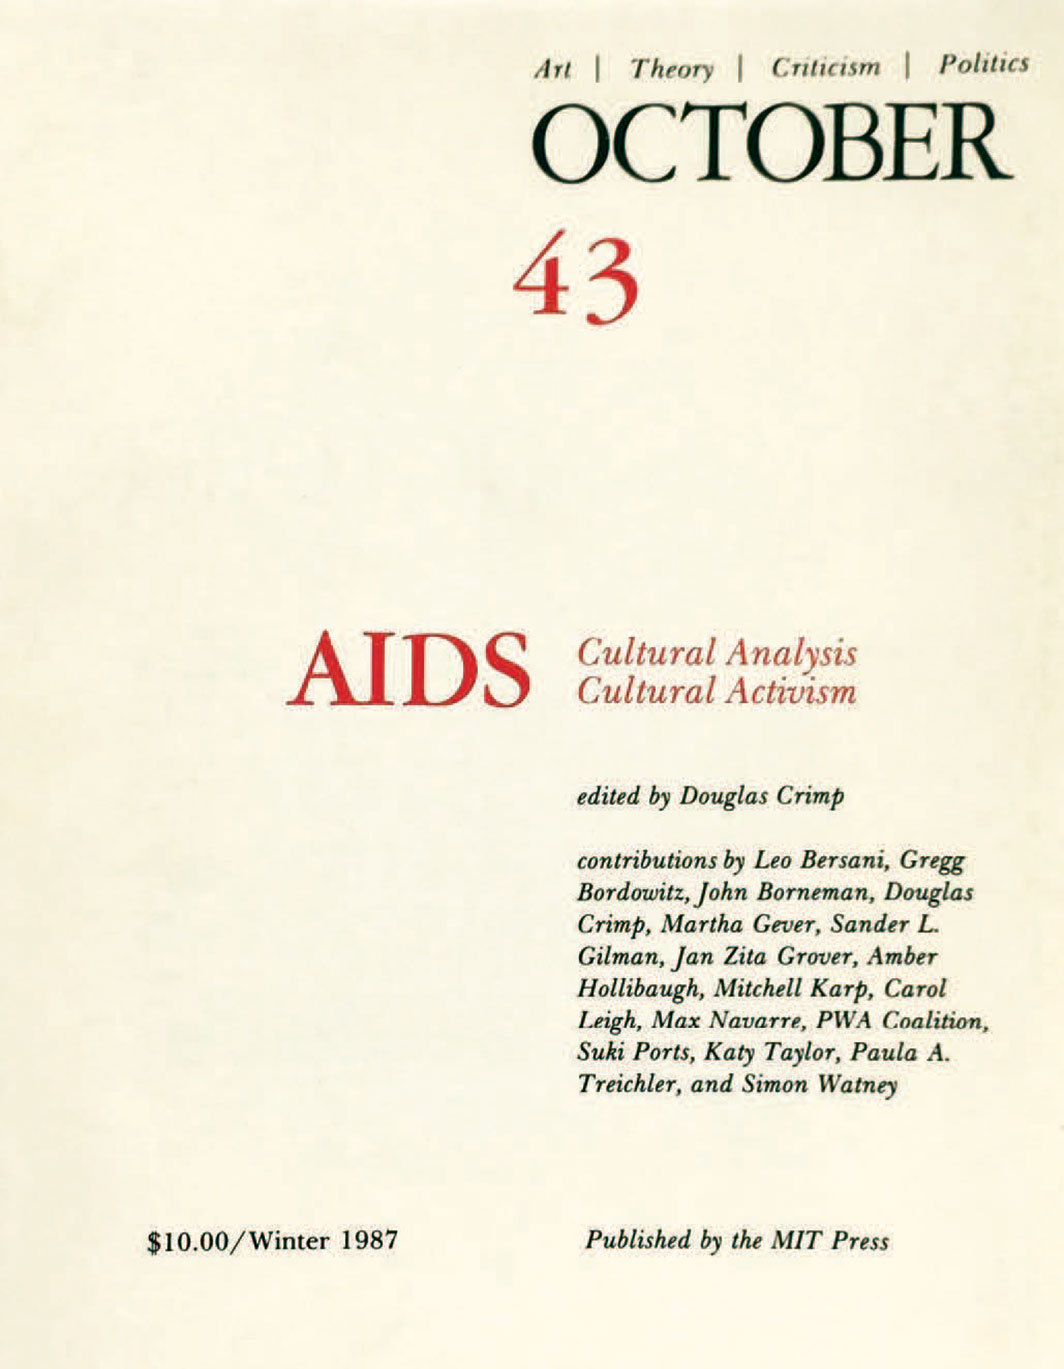 Cover of October 43 (Winter 1987).